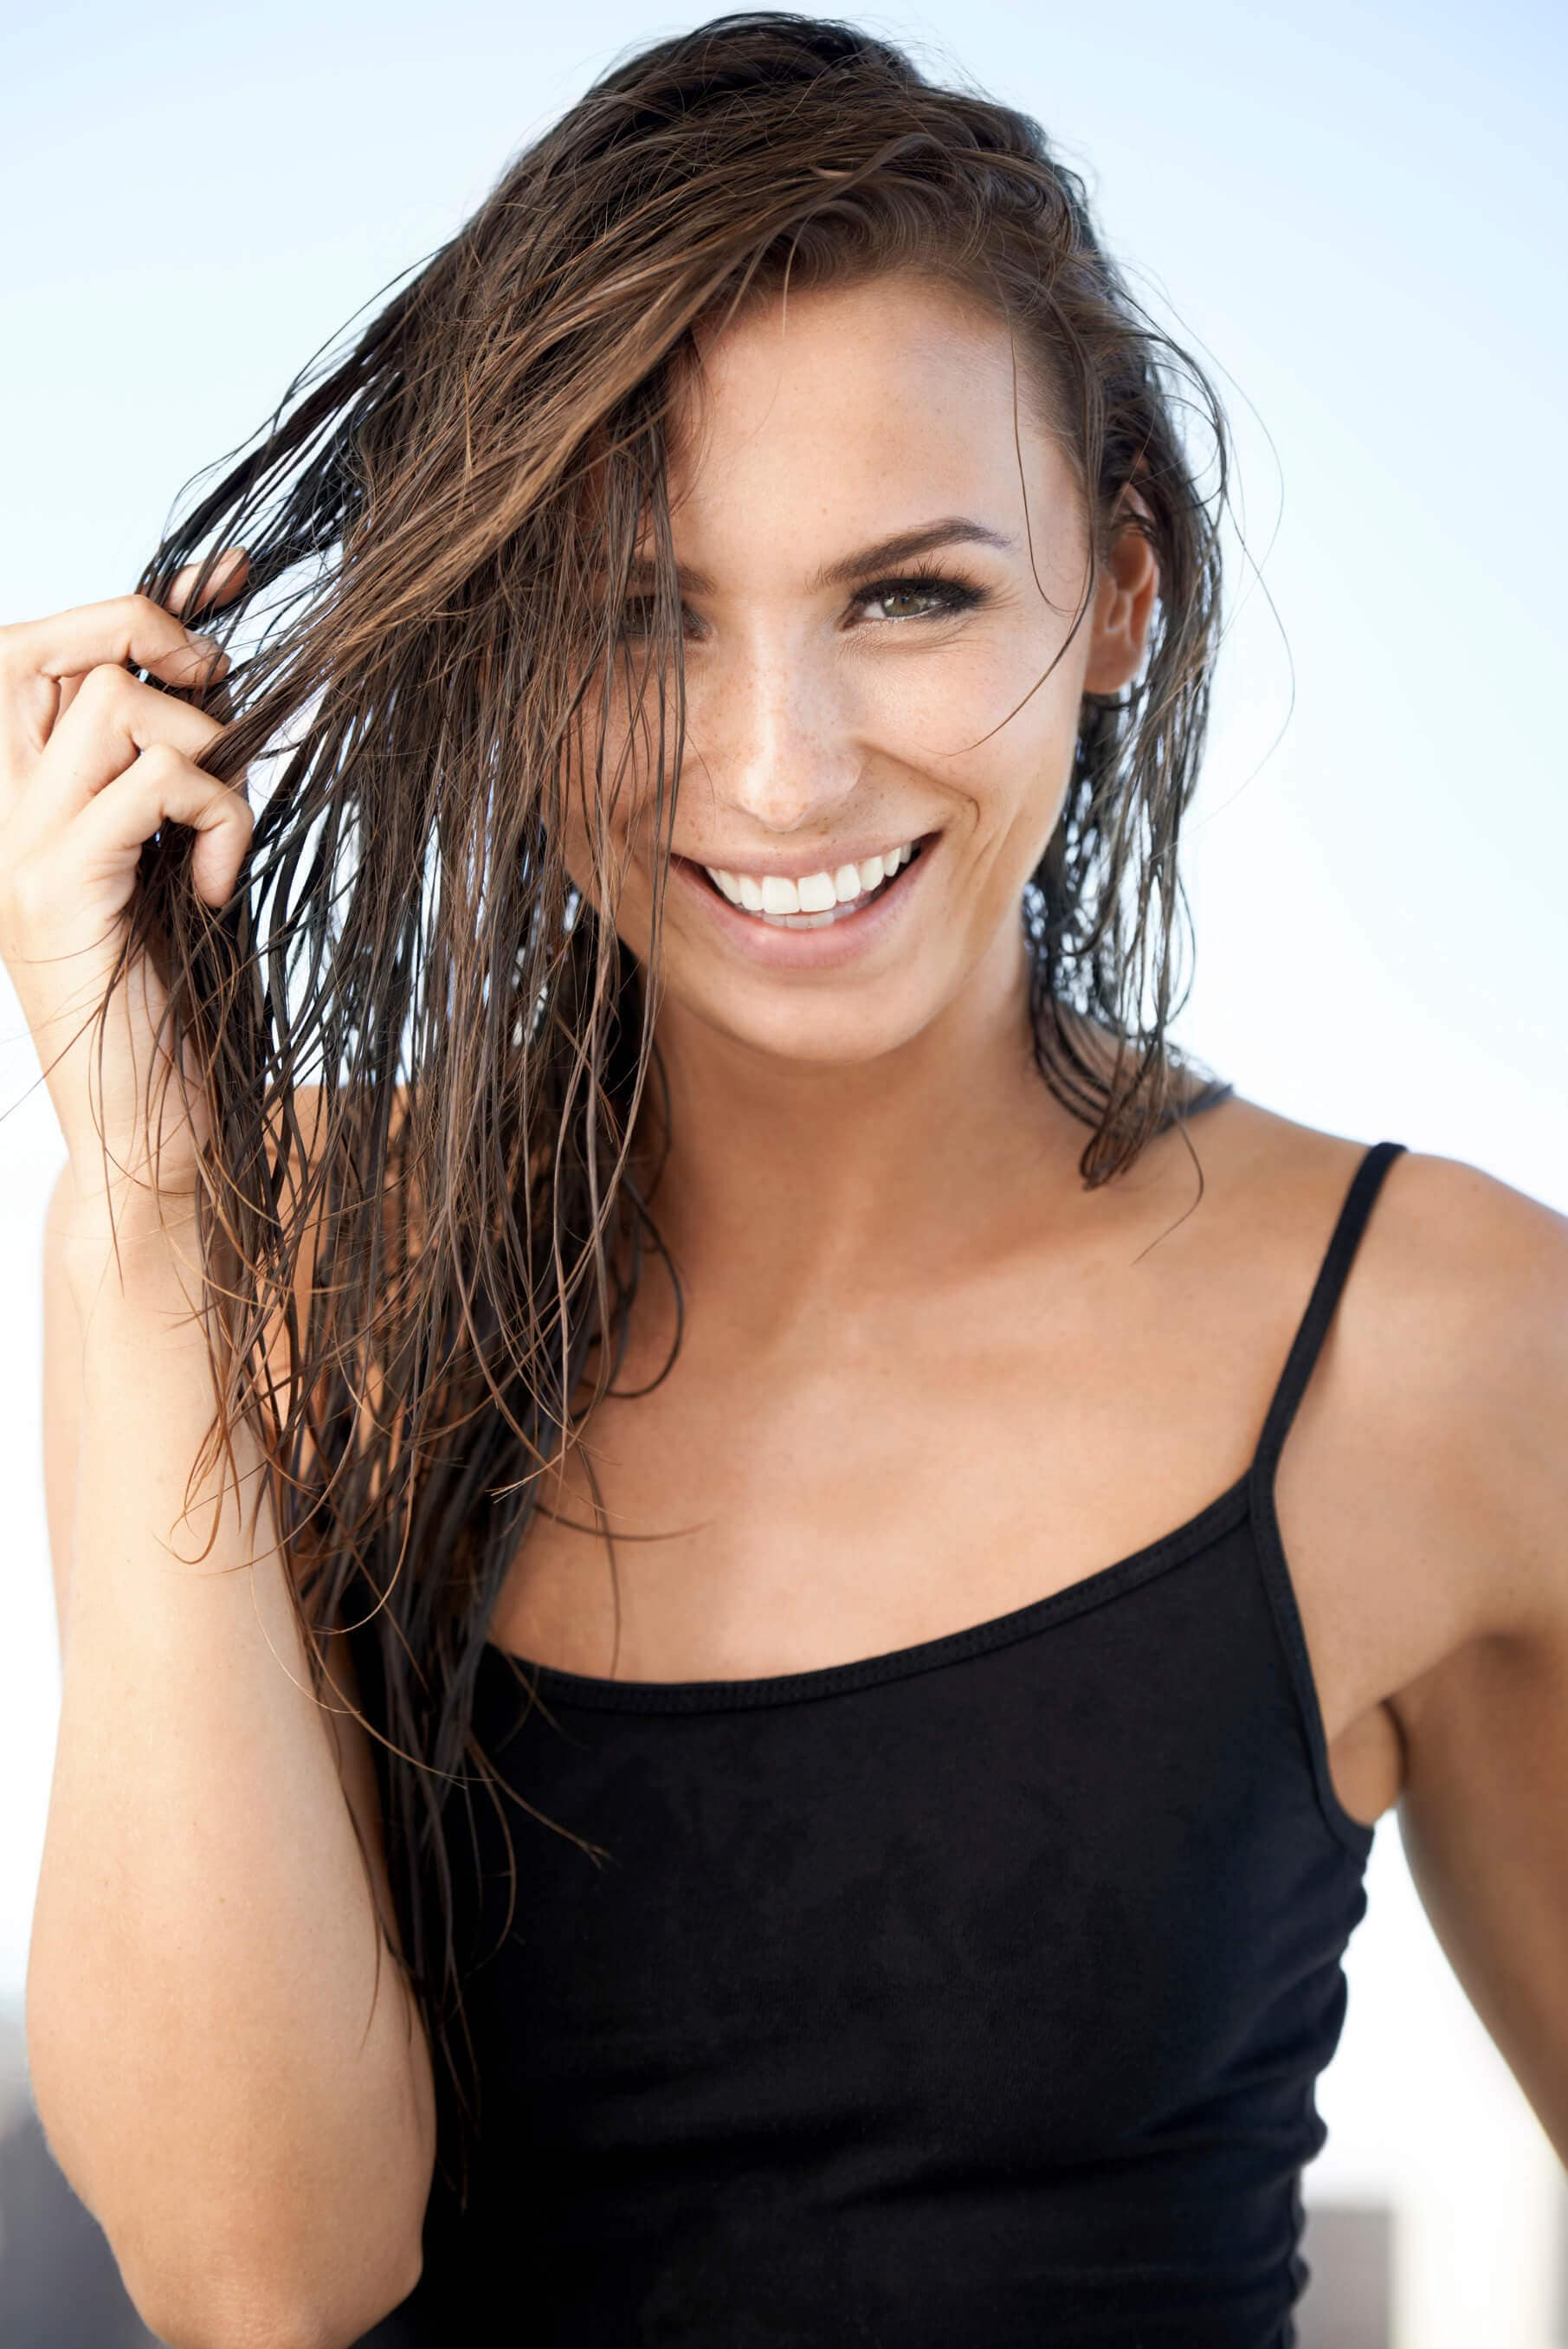 washing hair step by step guide